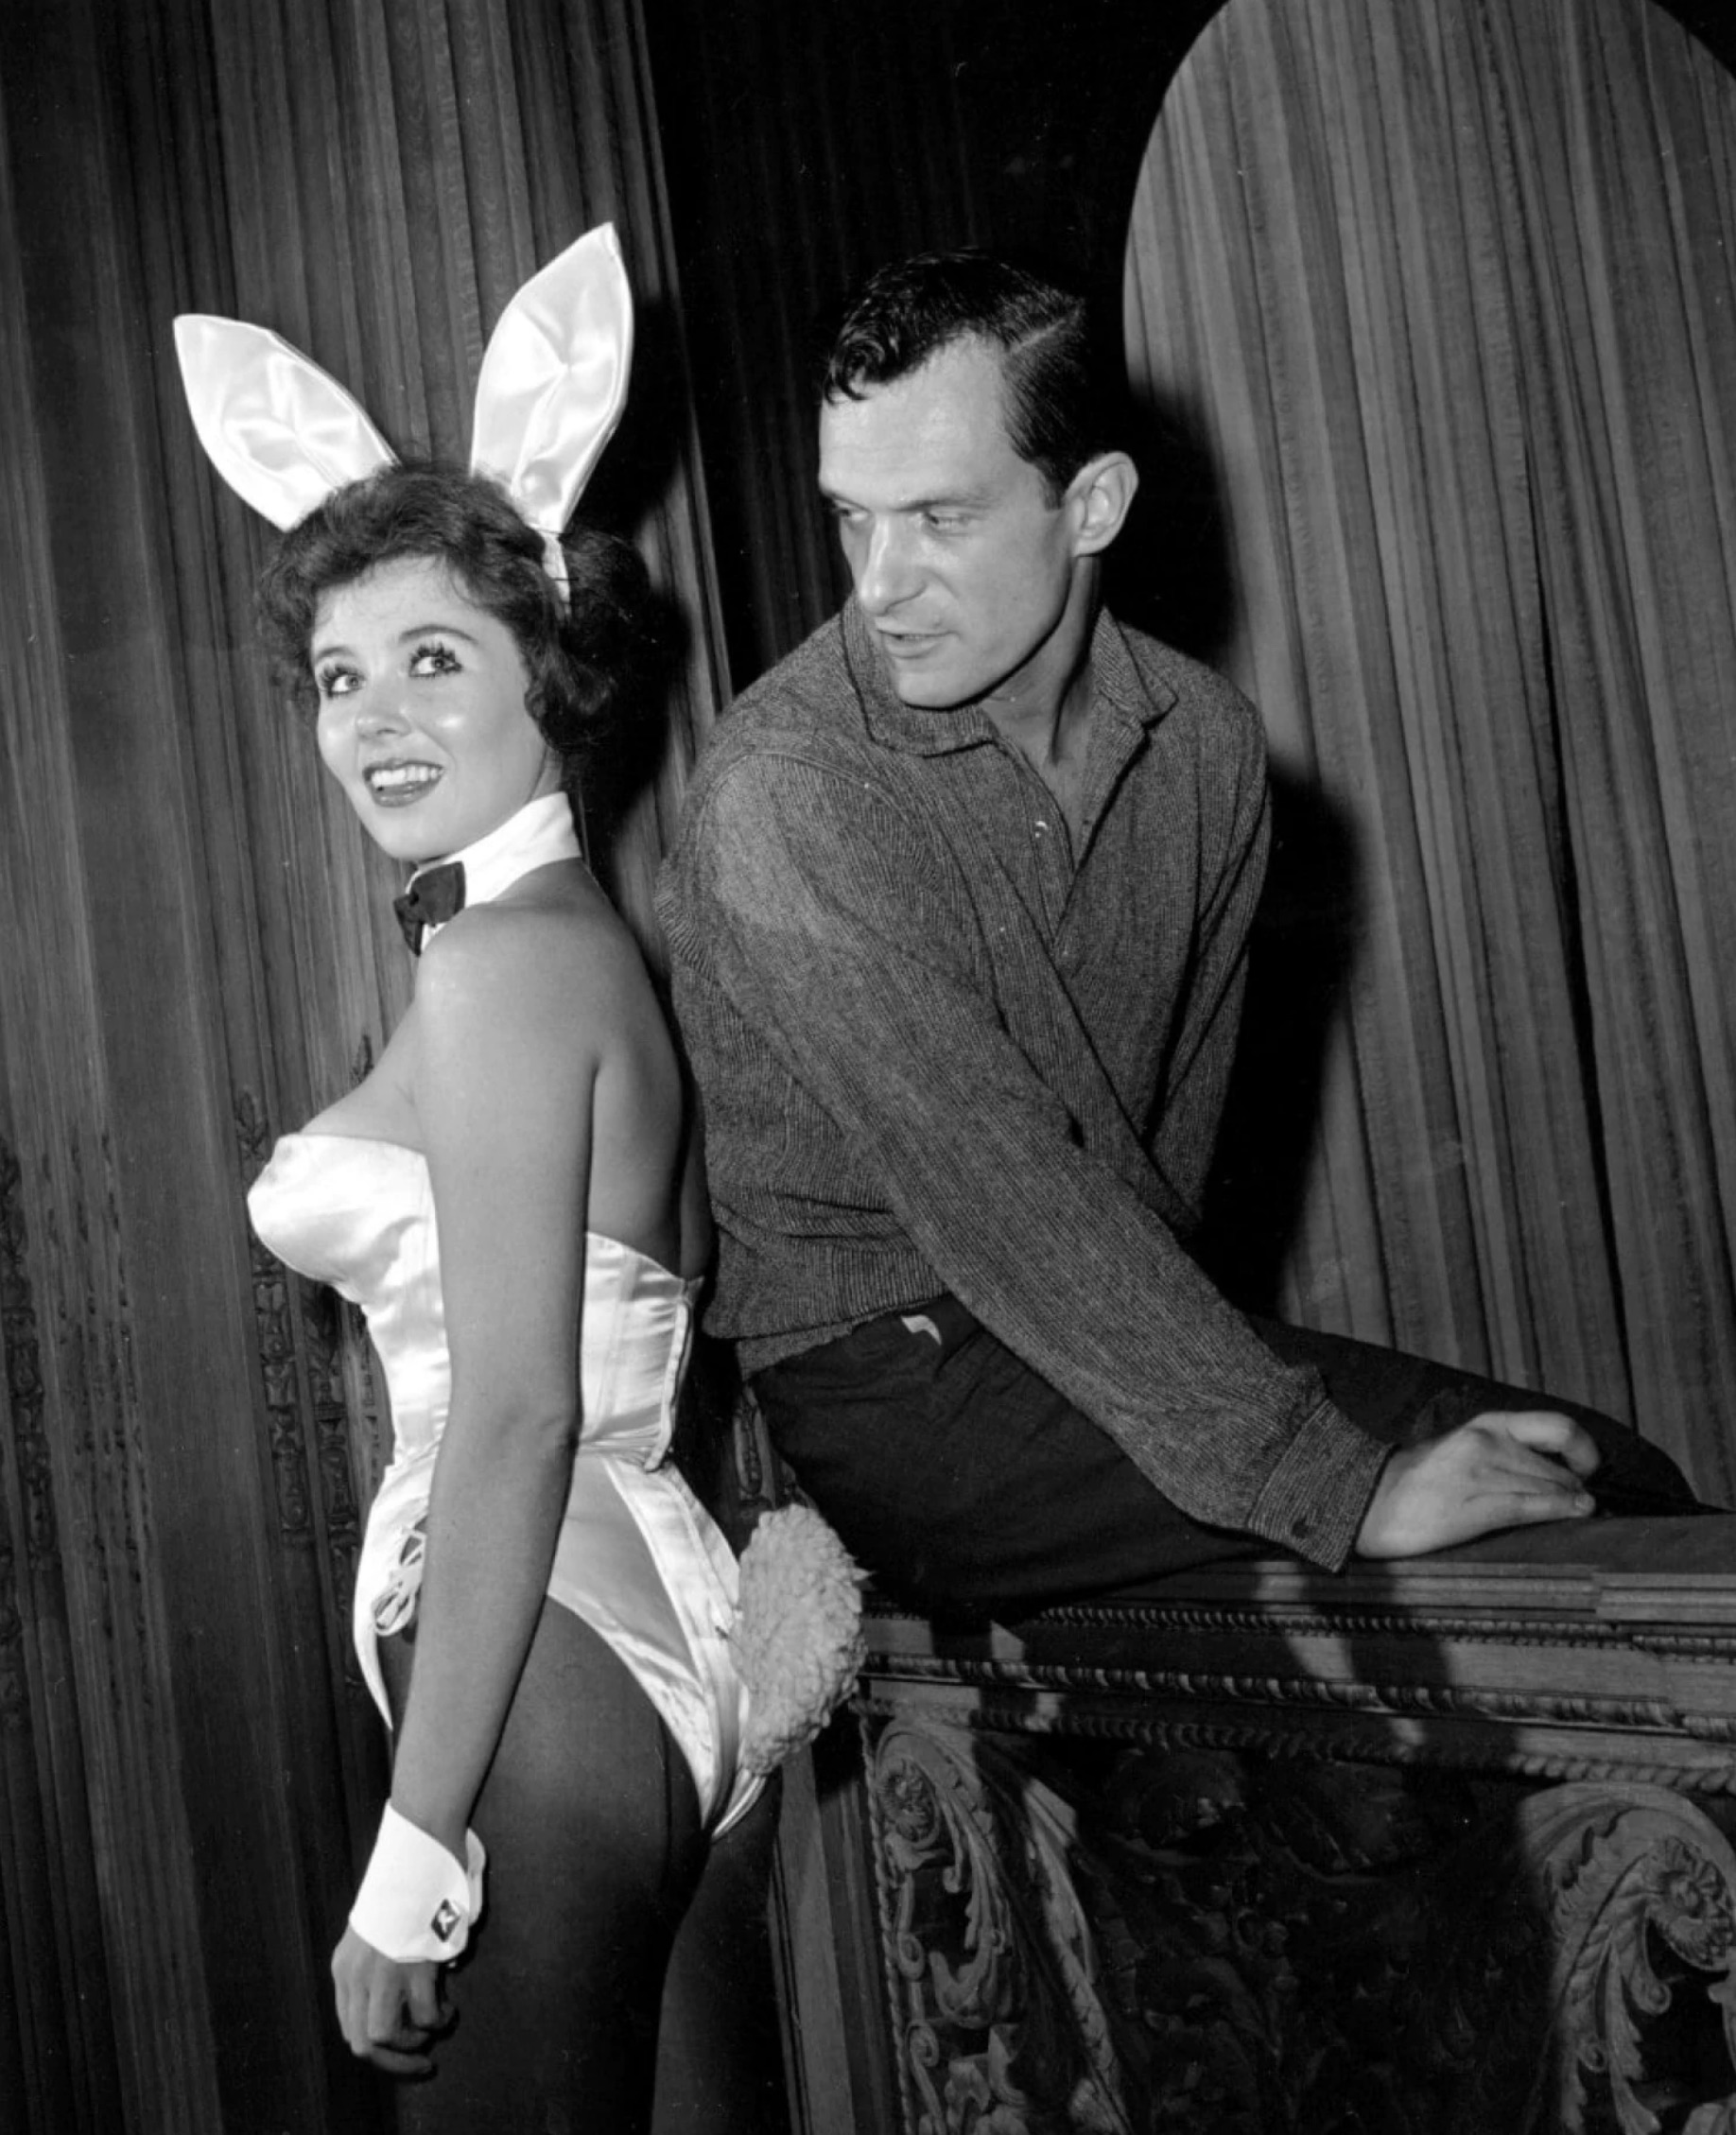 Hugh Hefner and a 'Playboy Bunny'